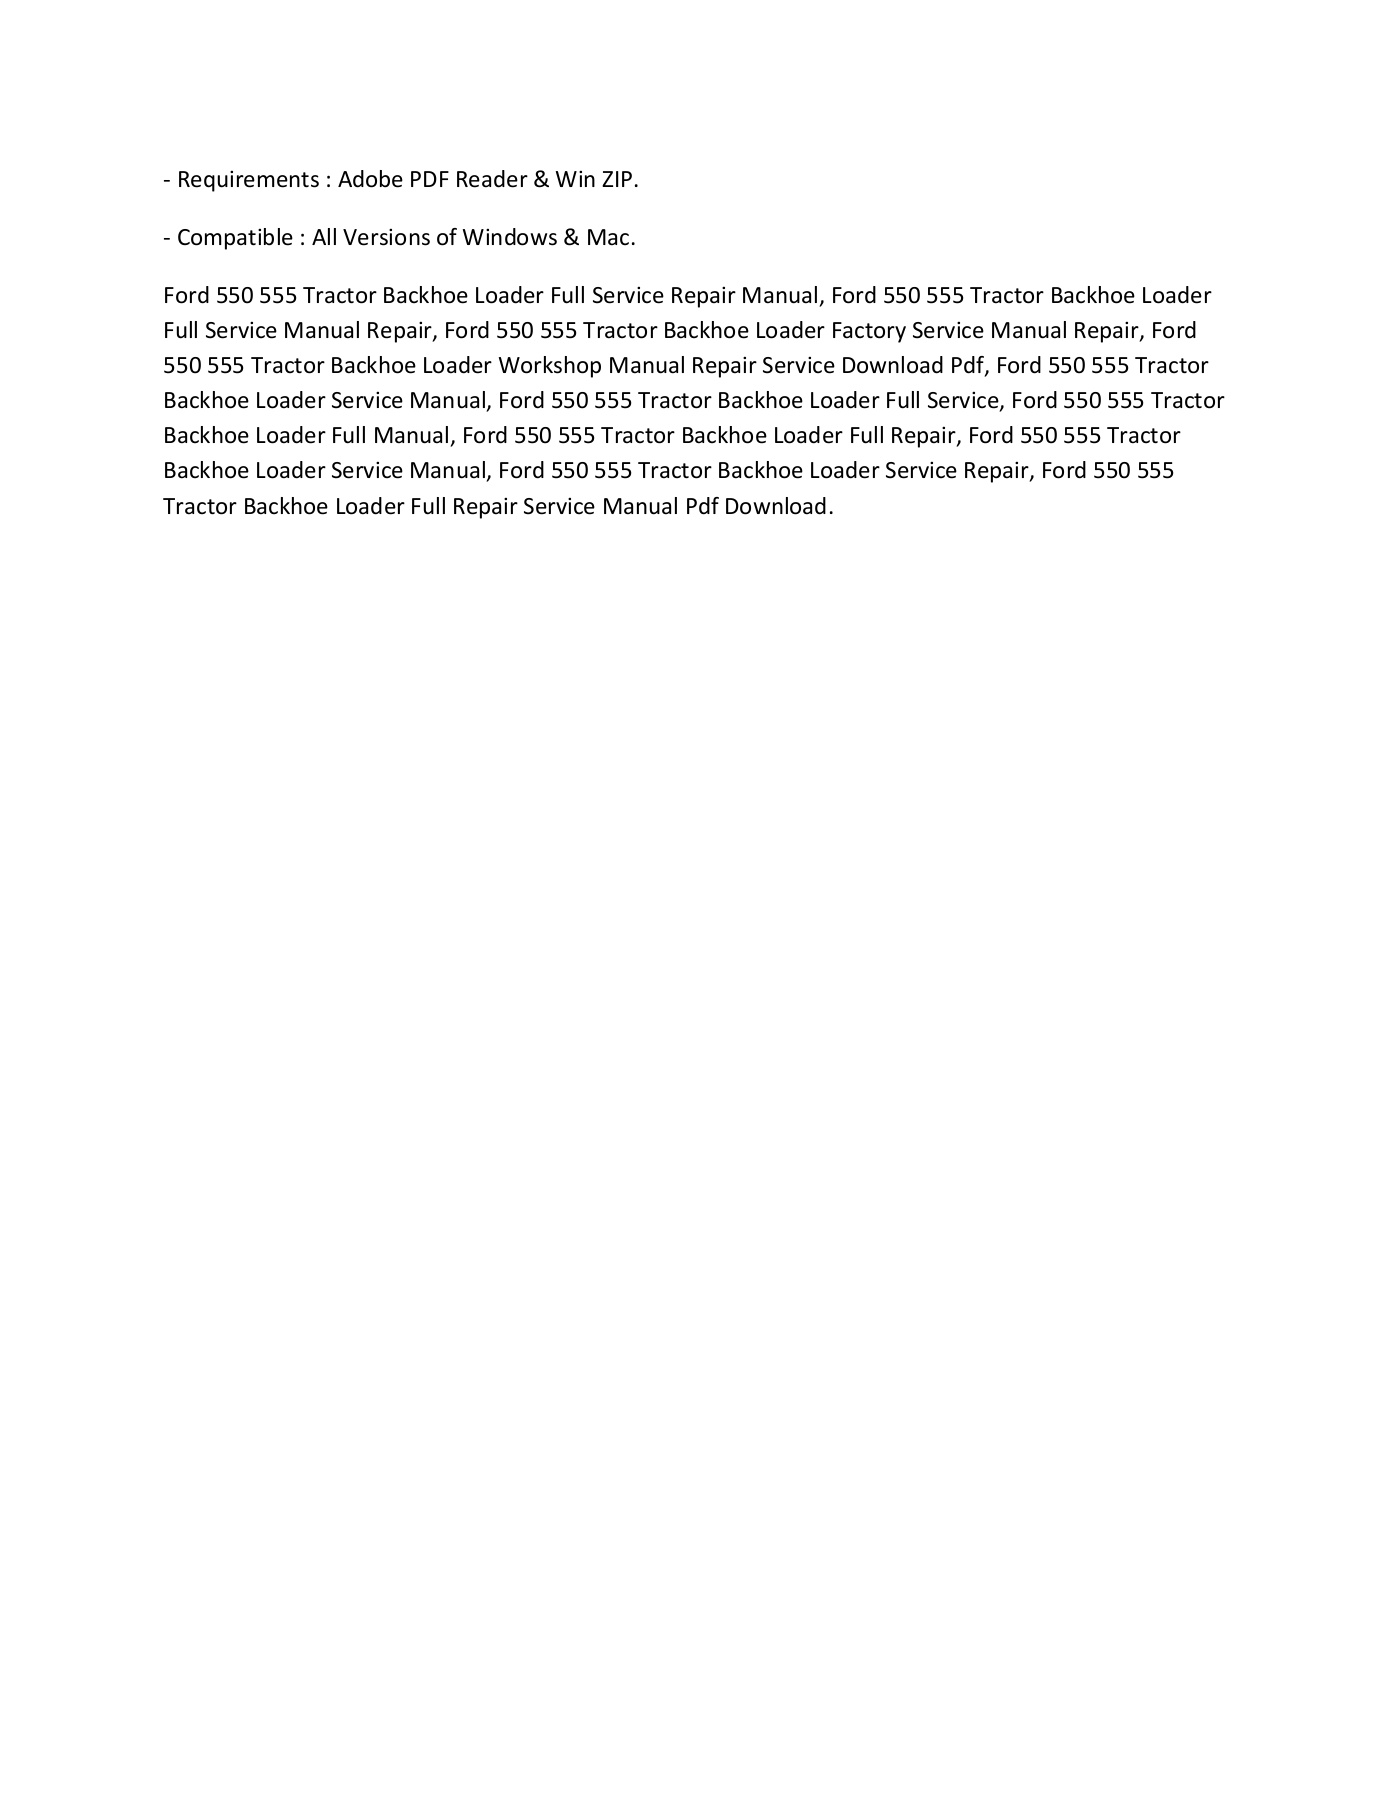 hight resolution of ford 550 555 tractor backhoe loader full service repair manual pages 1 2 text version anyflip